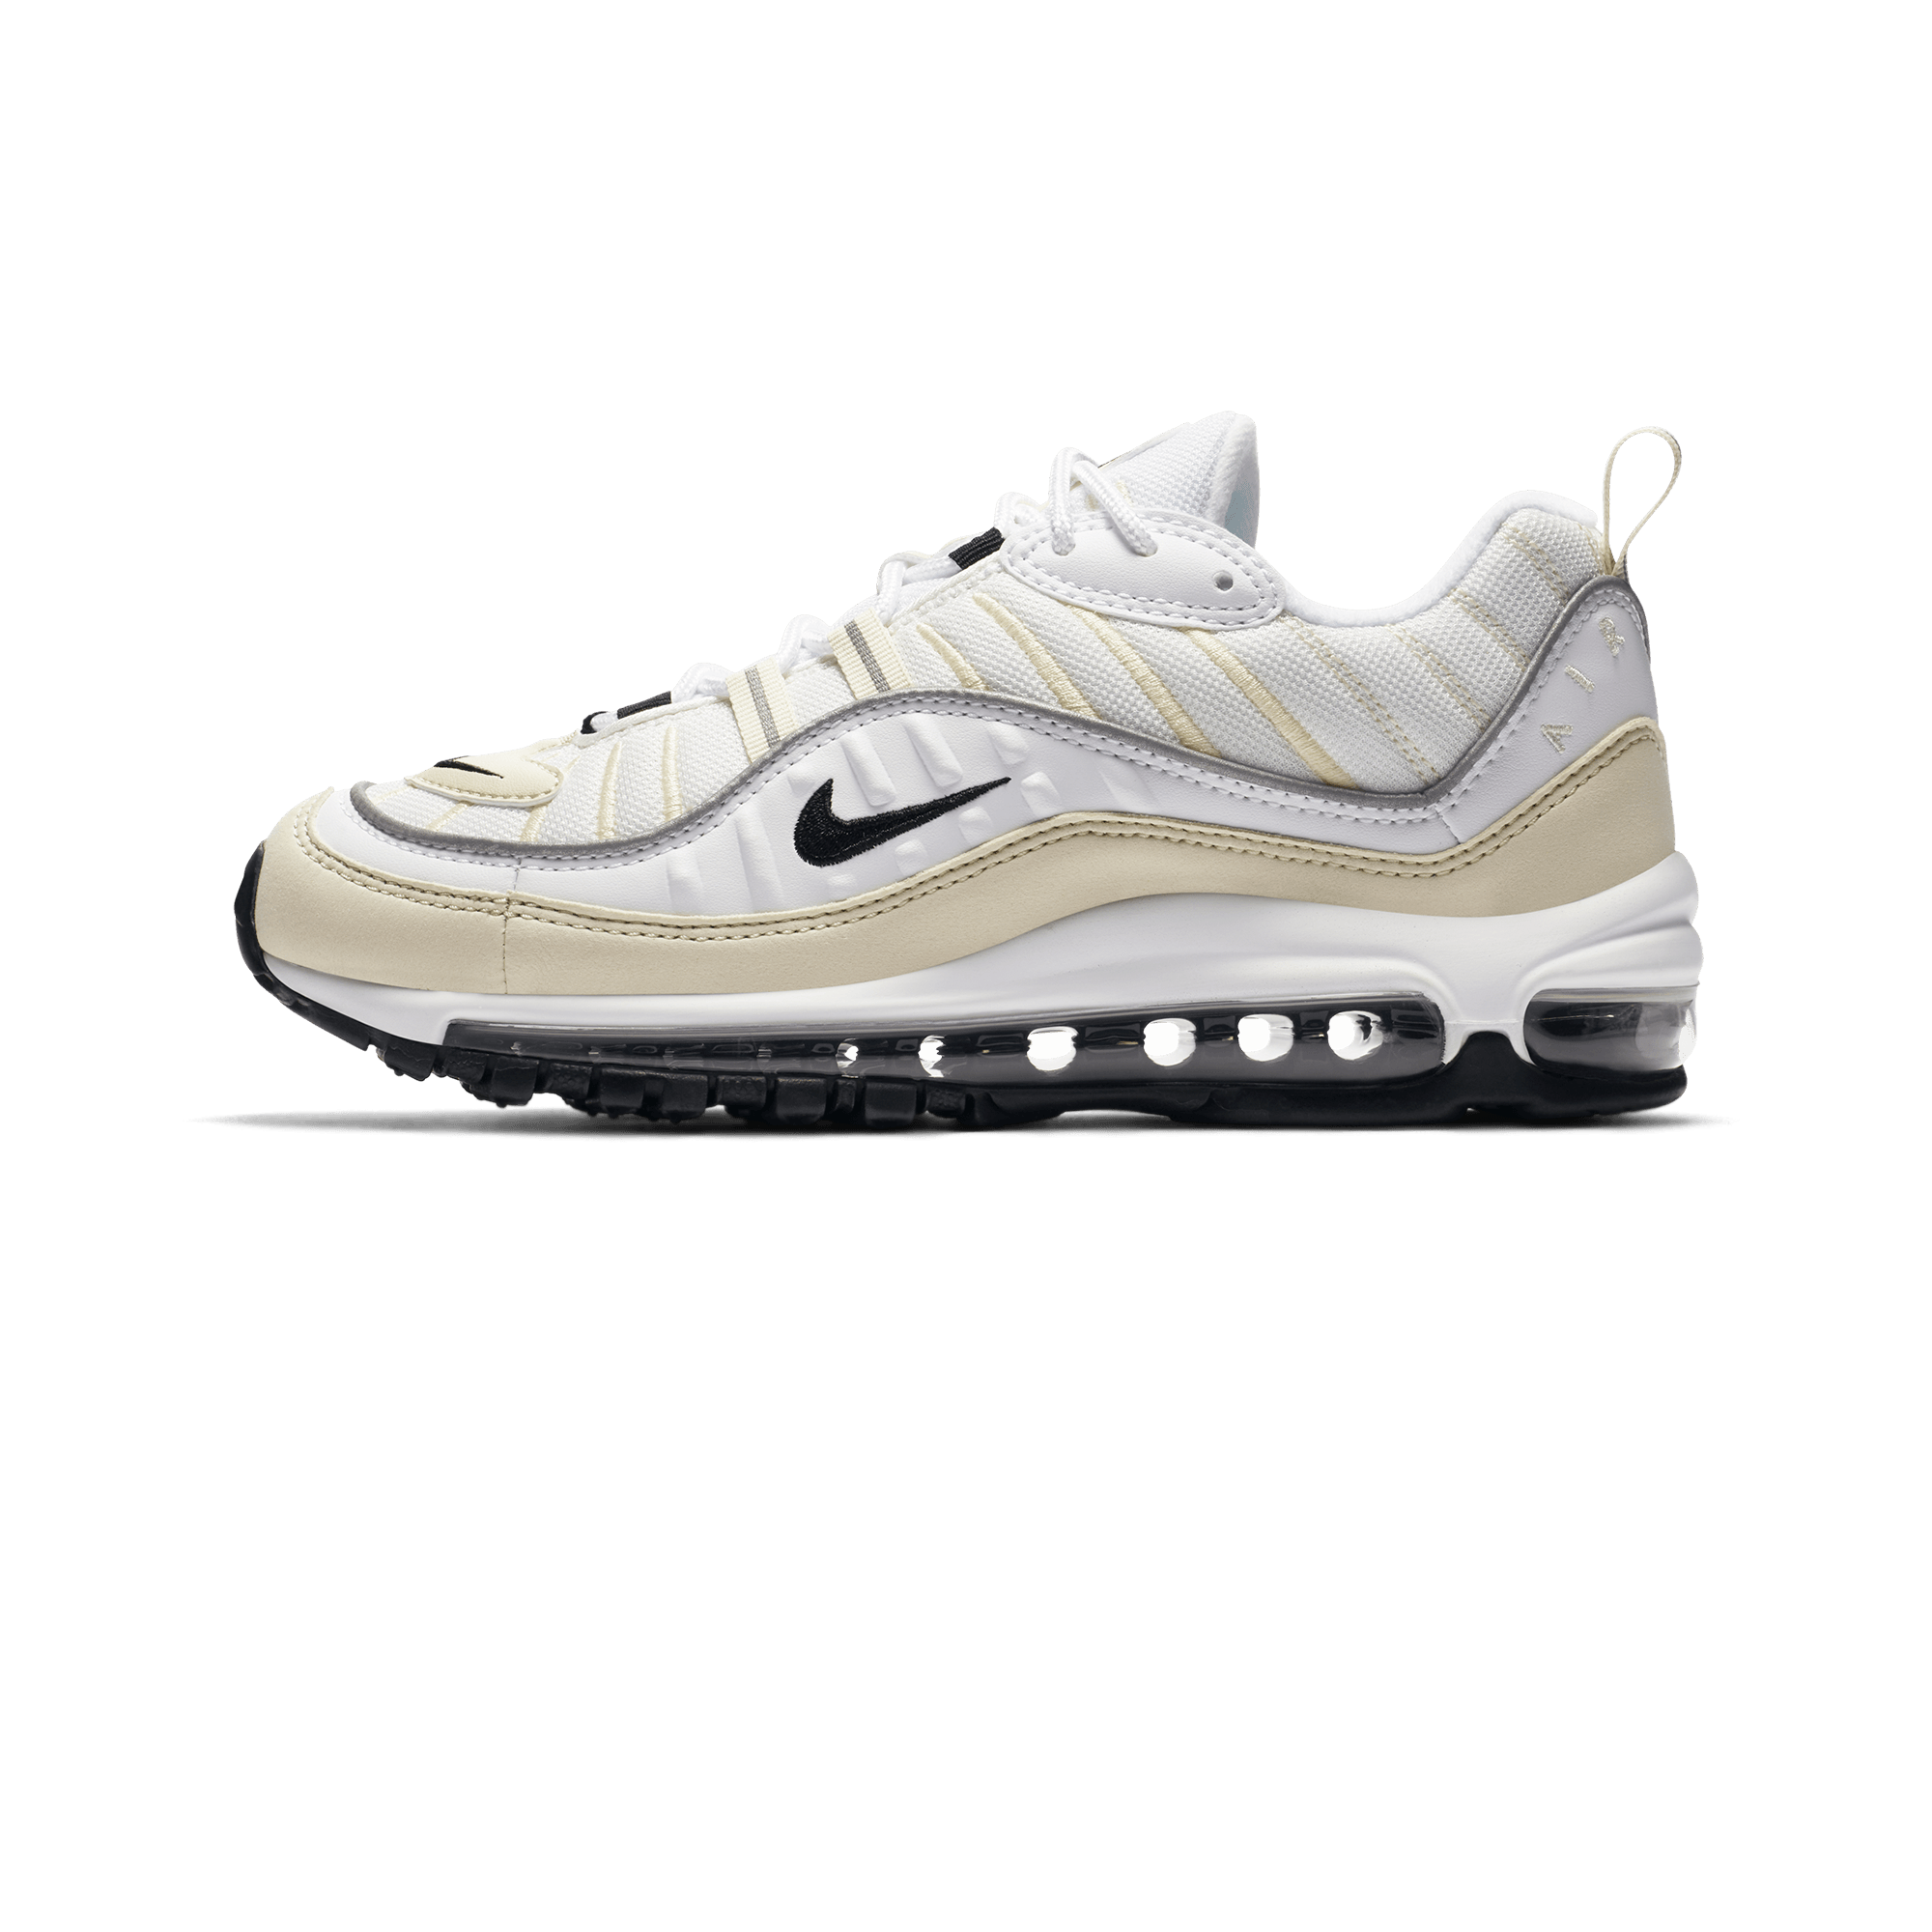 Nike Air Max 98 W white black fossil Woman |